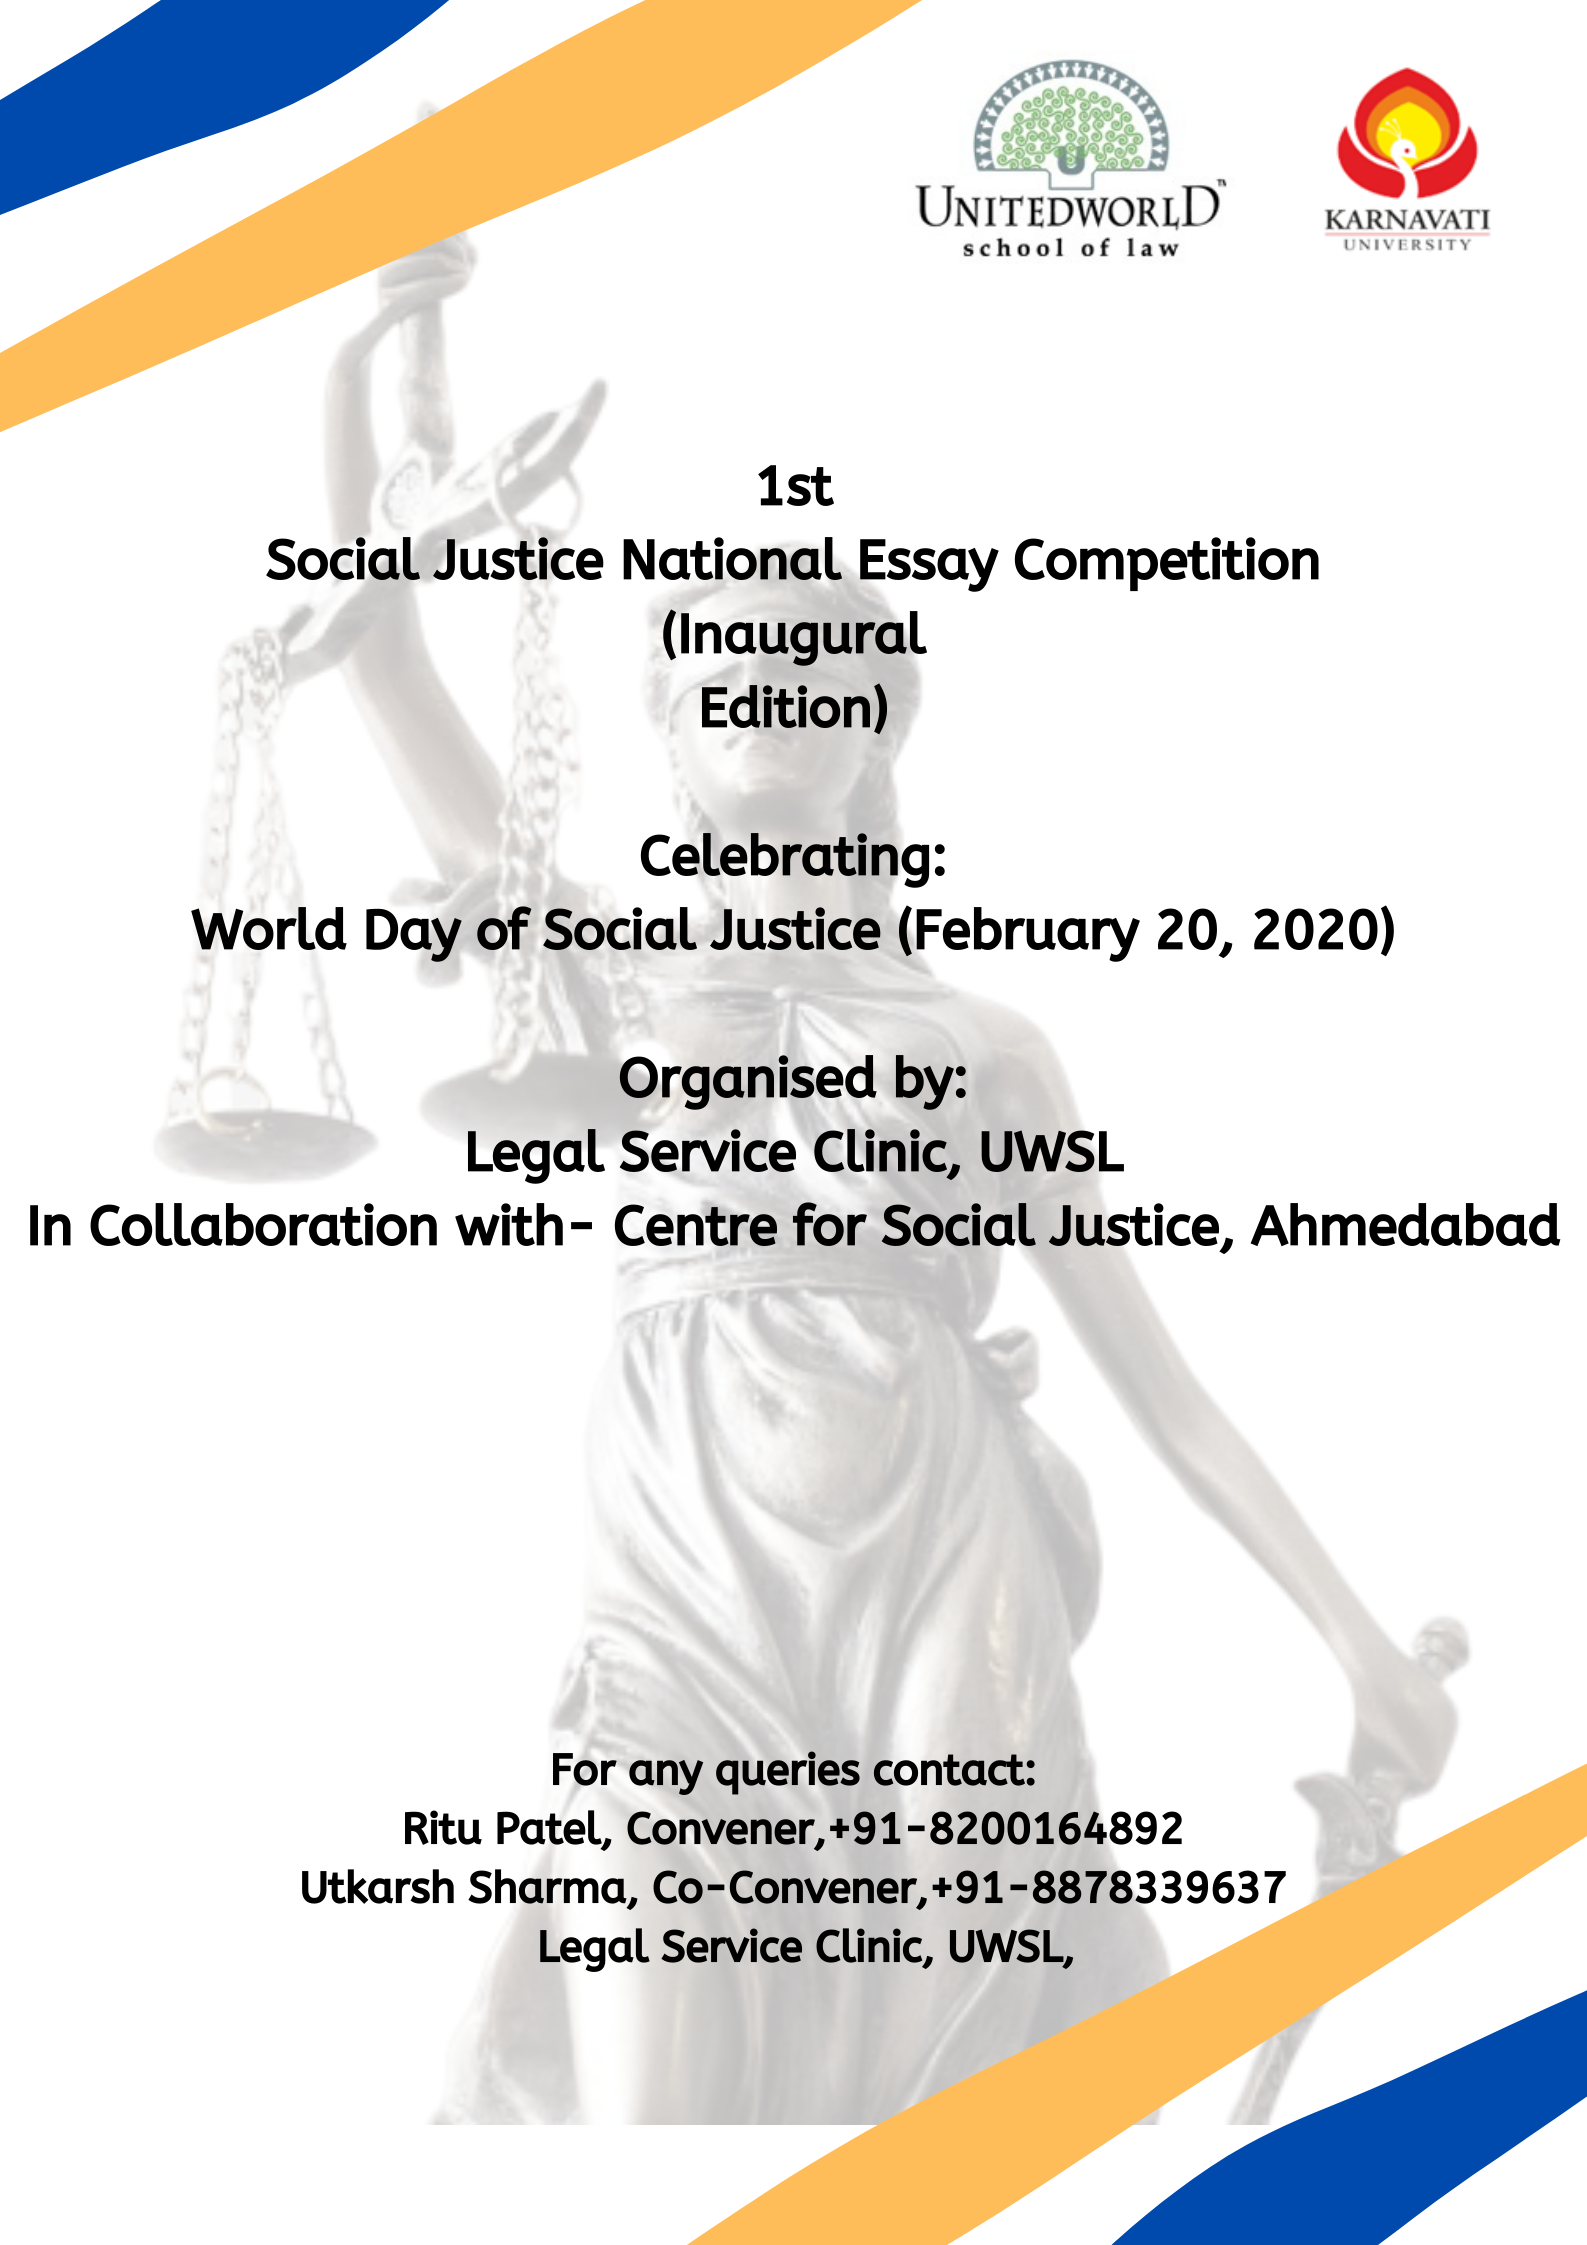 1st Social Justice National Essay Competition by Unitedworld School of Law